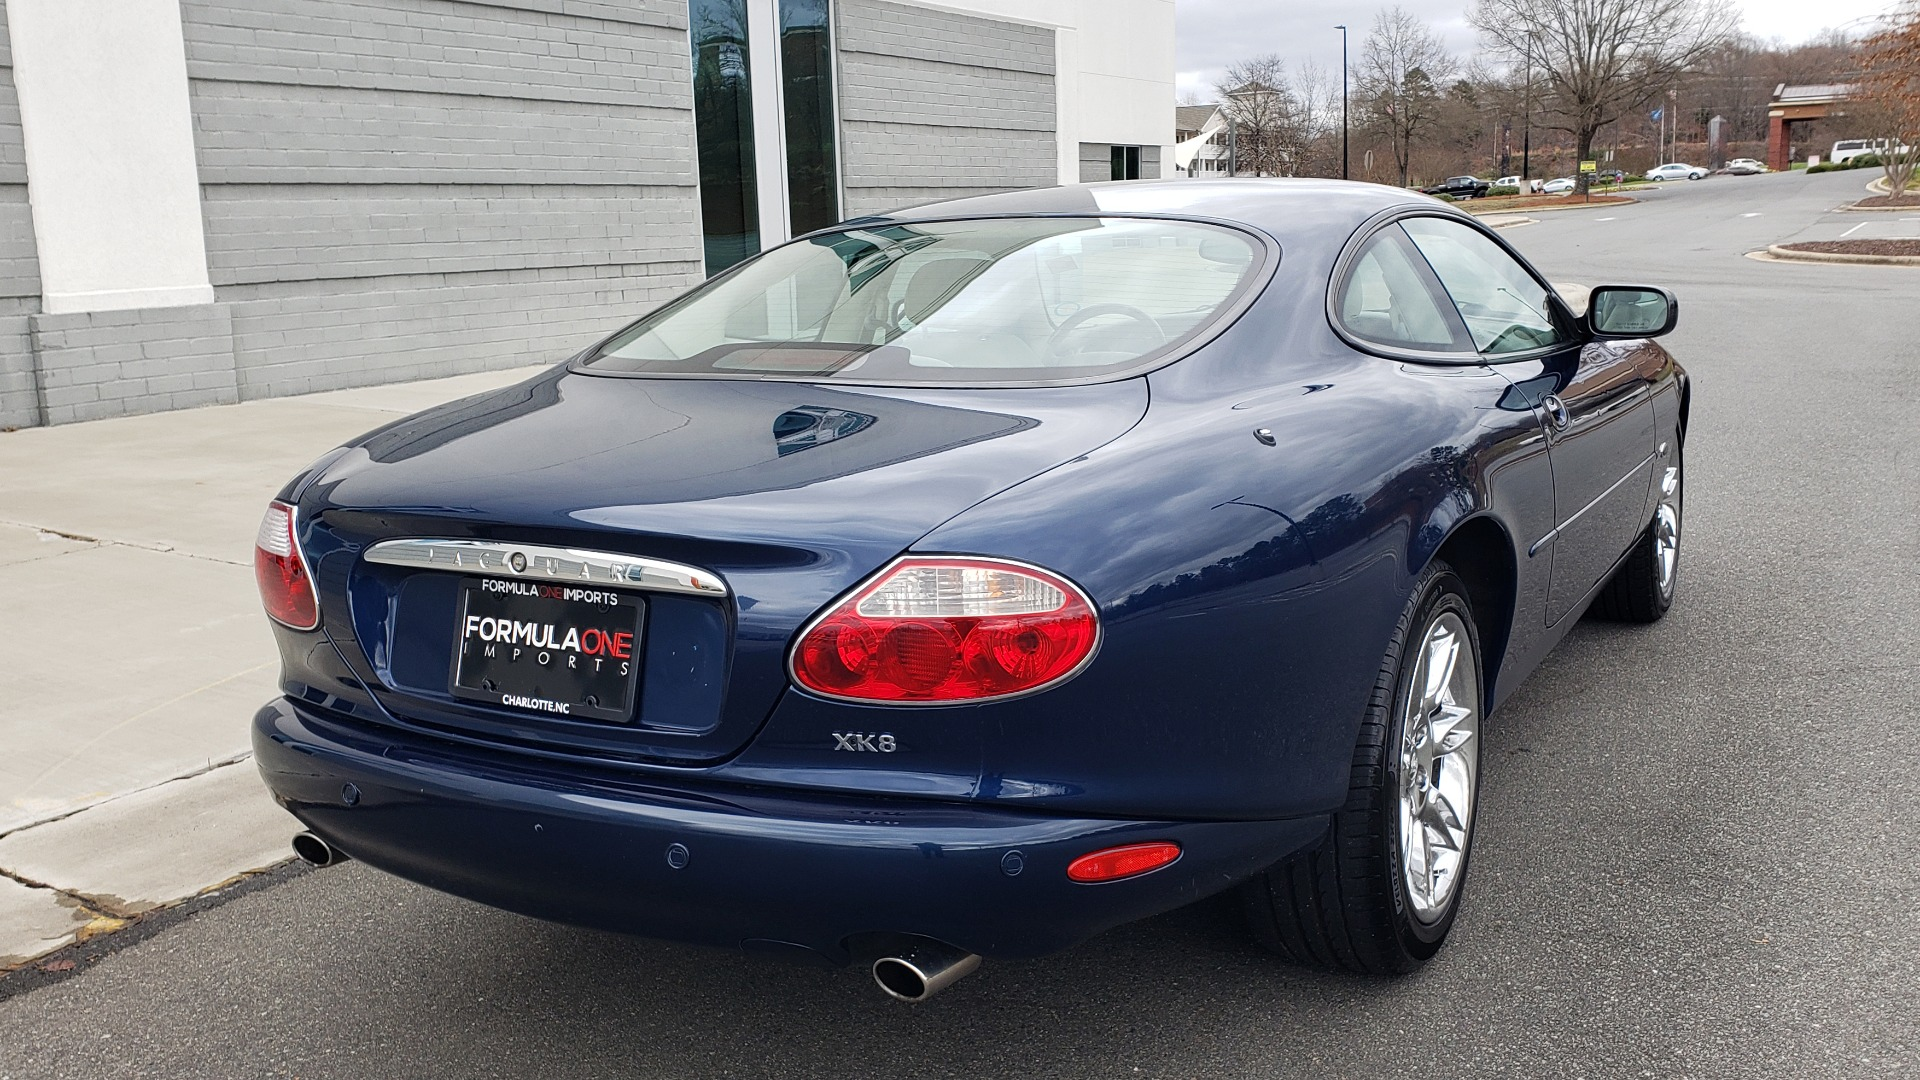 Used 2002 Jaguar XK8 COUPE / 4.0L V8 / 5-SPD AUTO / ALPINE SOUND / 18IN CHROME WHEELS for sale $16,450 at Formula Imports in Charlotte NC 28227 9